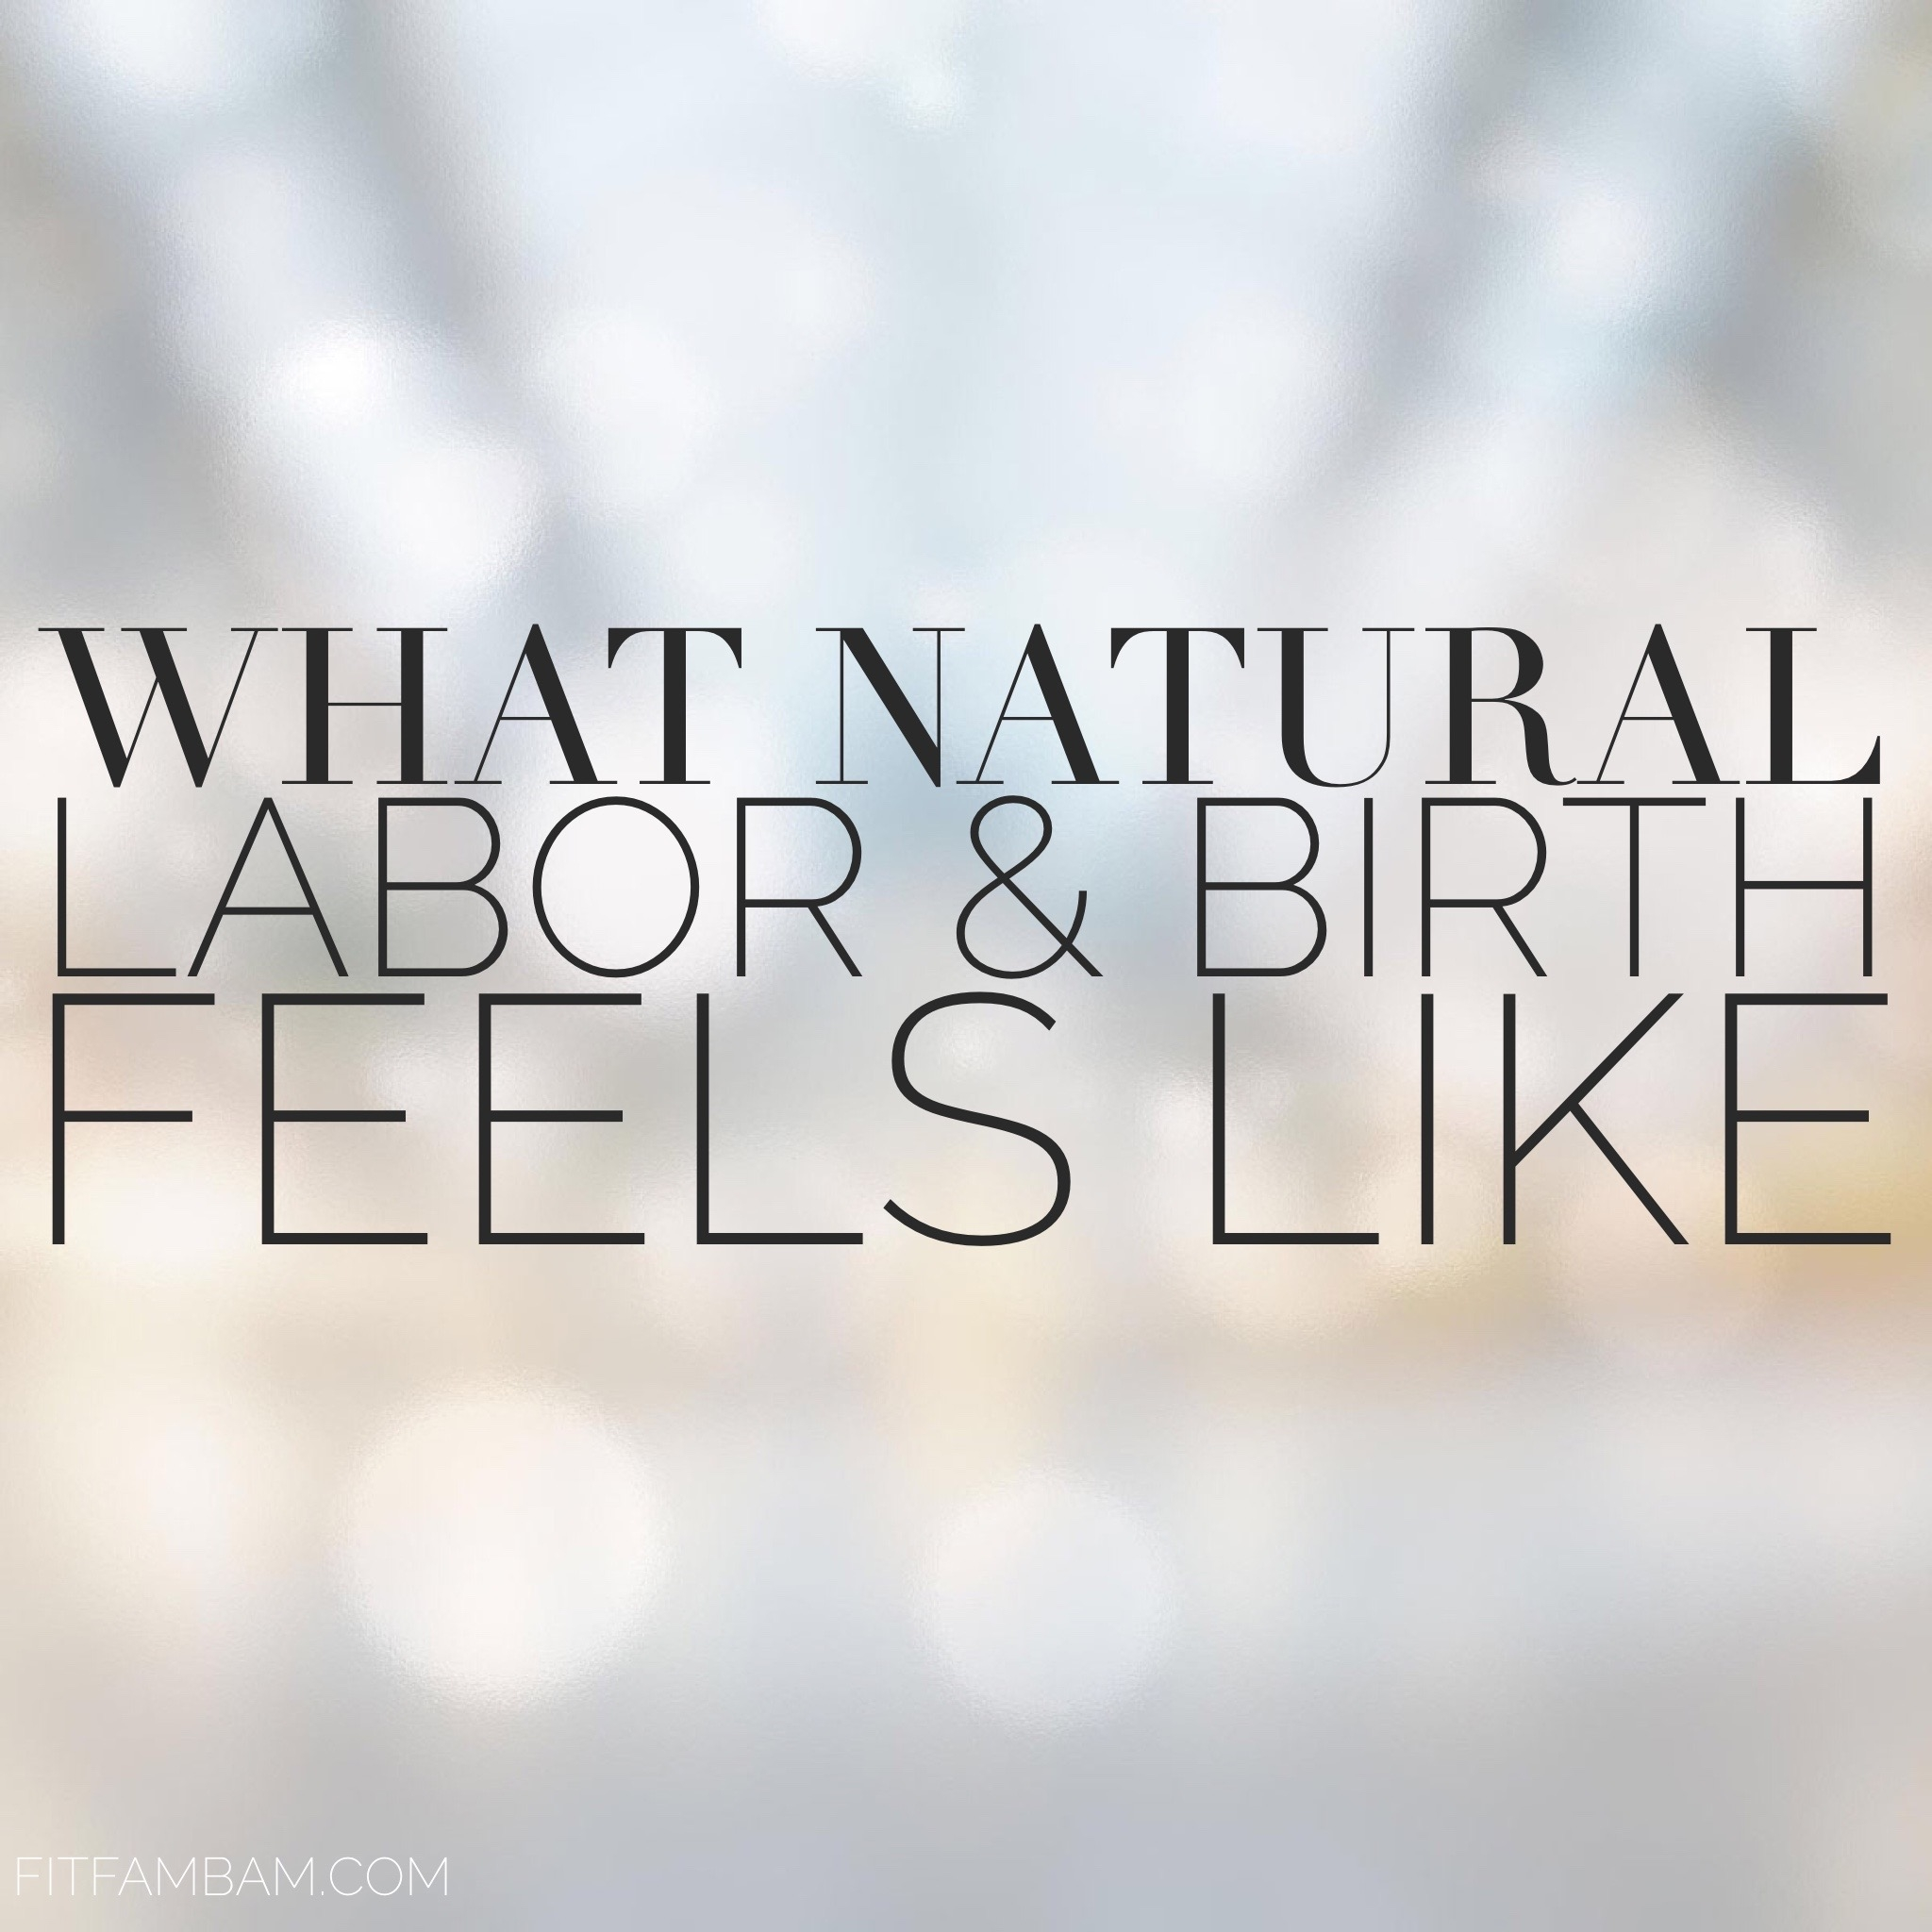 What Natural Labor & Birth Feels Like | FitFamBam